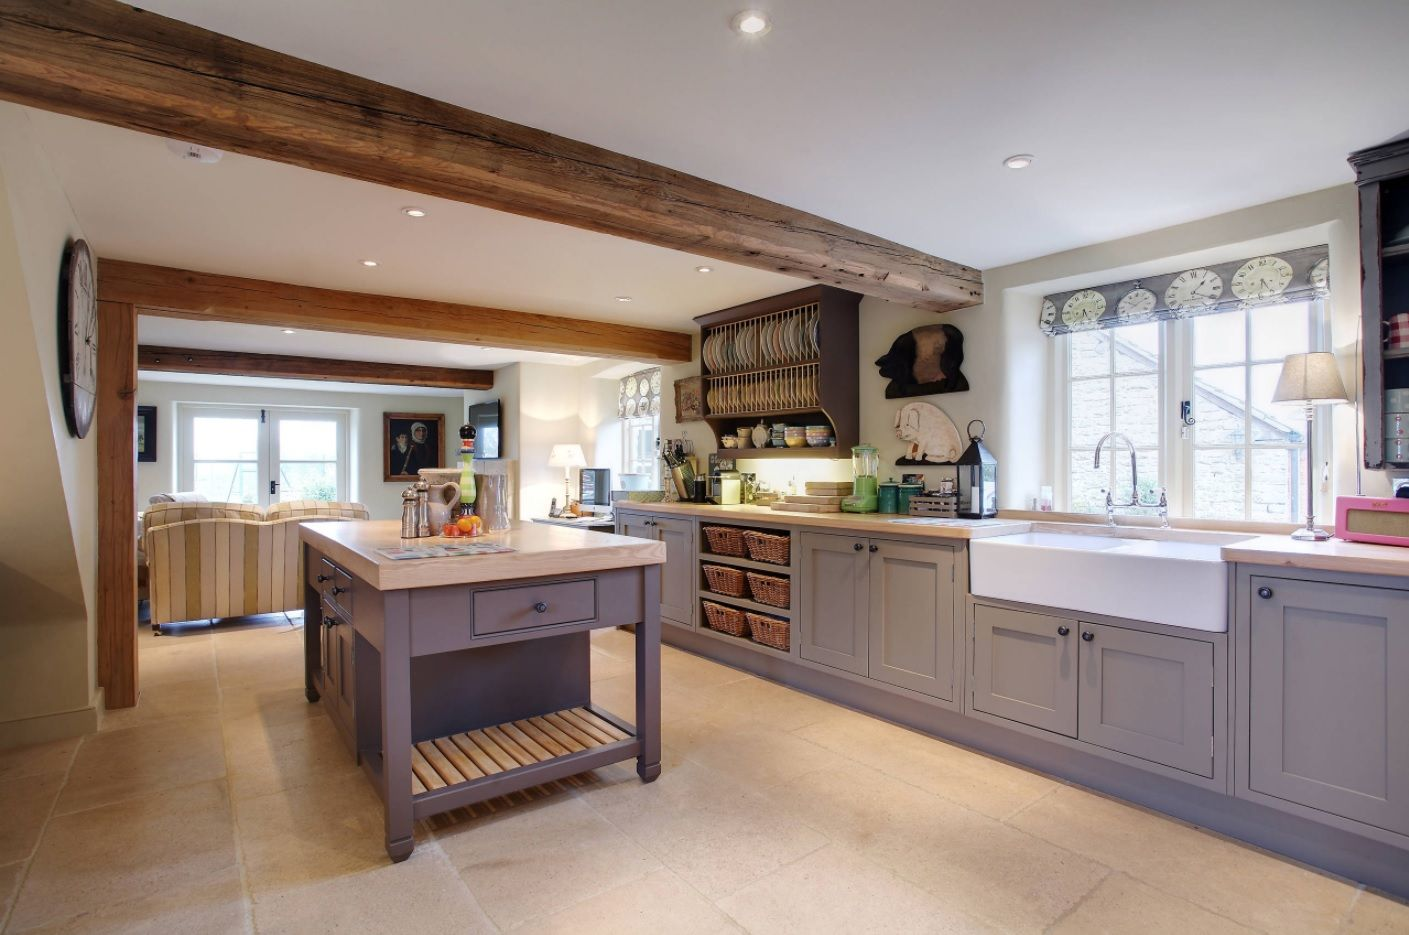 Large open layout space of the bespoke kitchen with minimalism and rustic styles combination